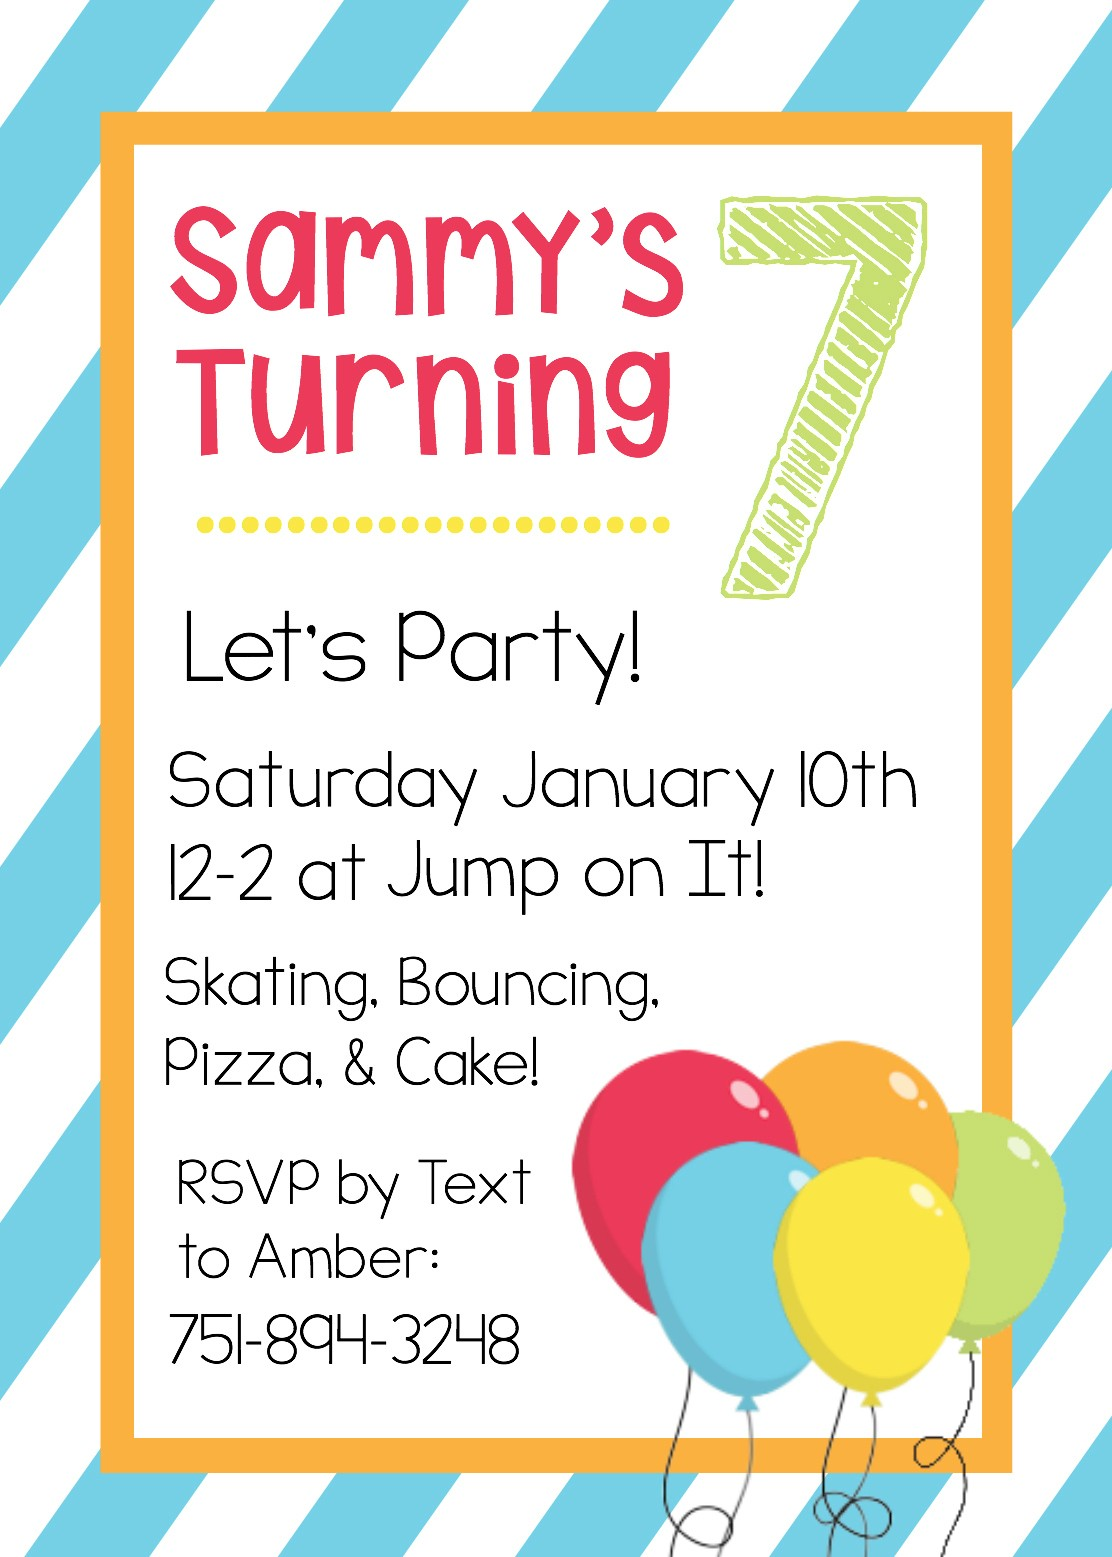 free birthday party invitation templates with photo ; birthday-party-invitation-designs-inspirationalnew-free-printable-birthday-invitation-templates